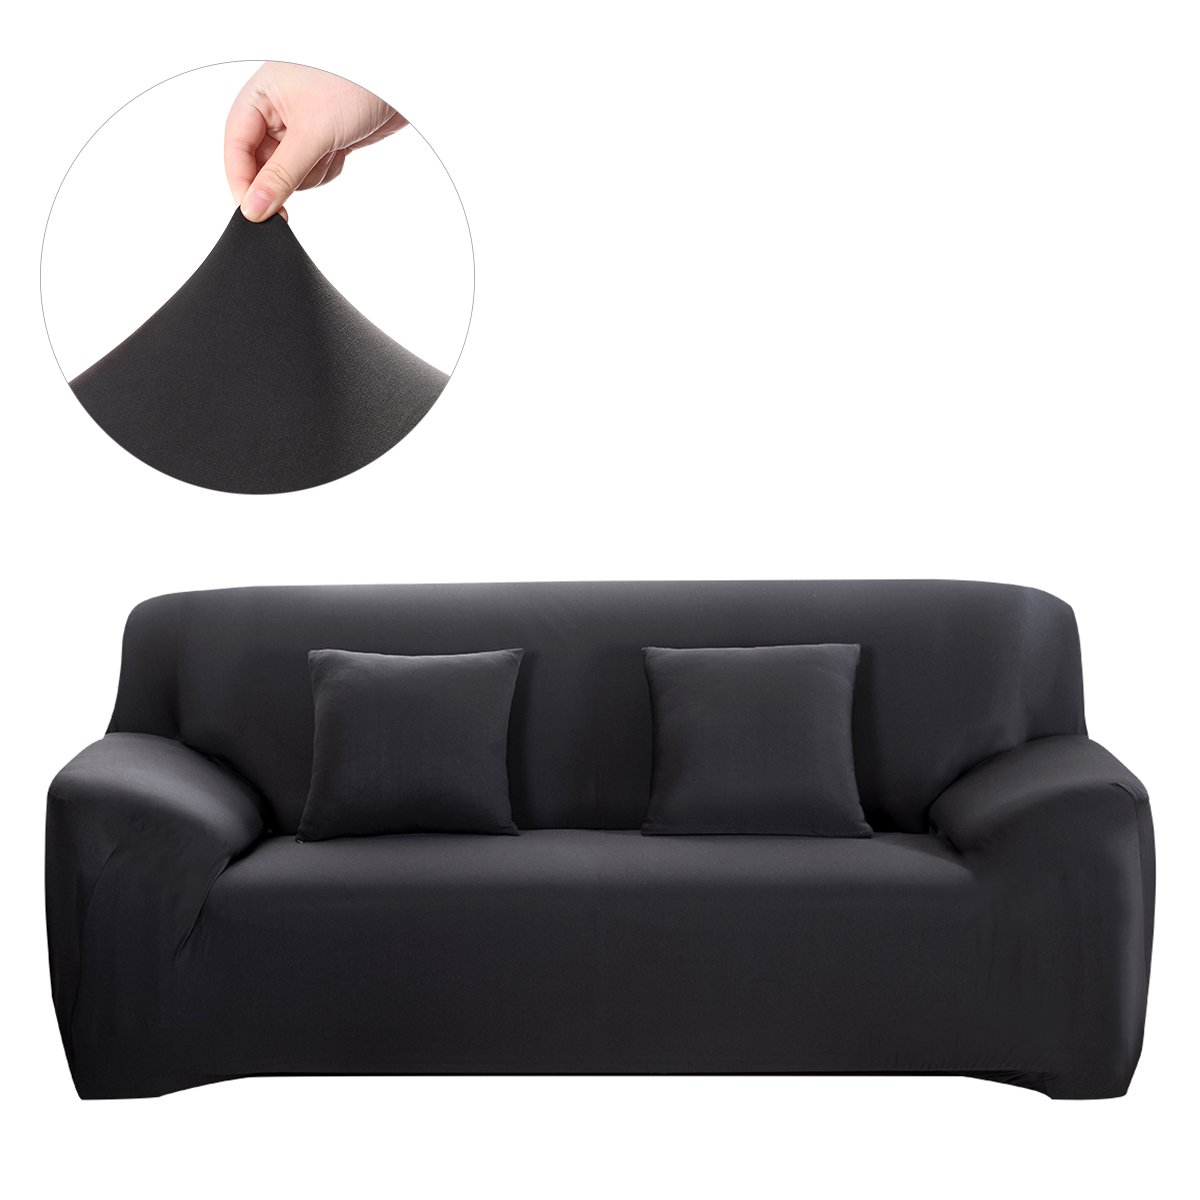 Amazon: WINOMO Sofa Slipcover Black Couch Covers Furniture Protector  With Pillow Cases Elastic: Home & Kitchen